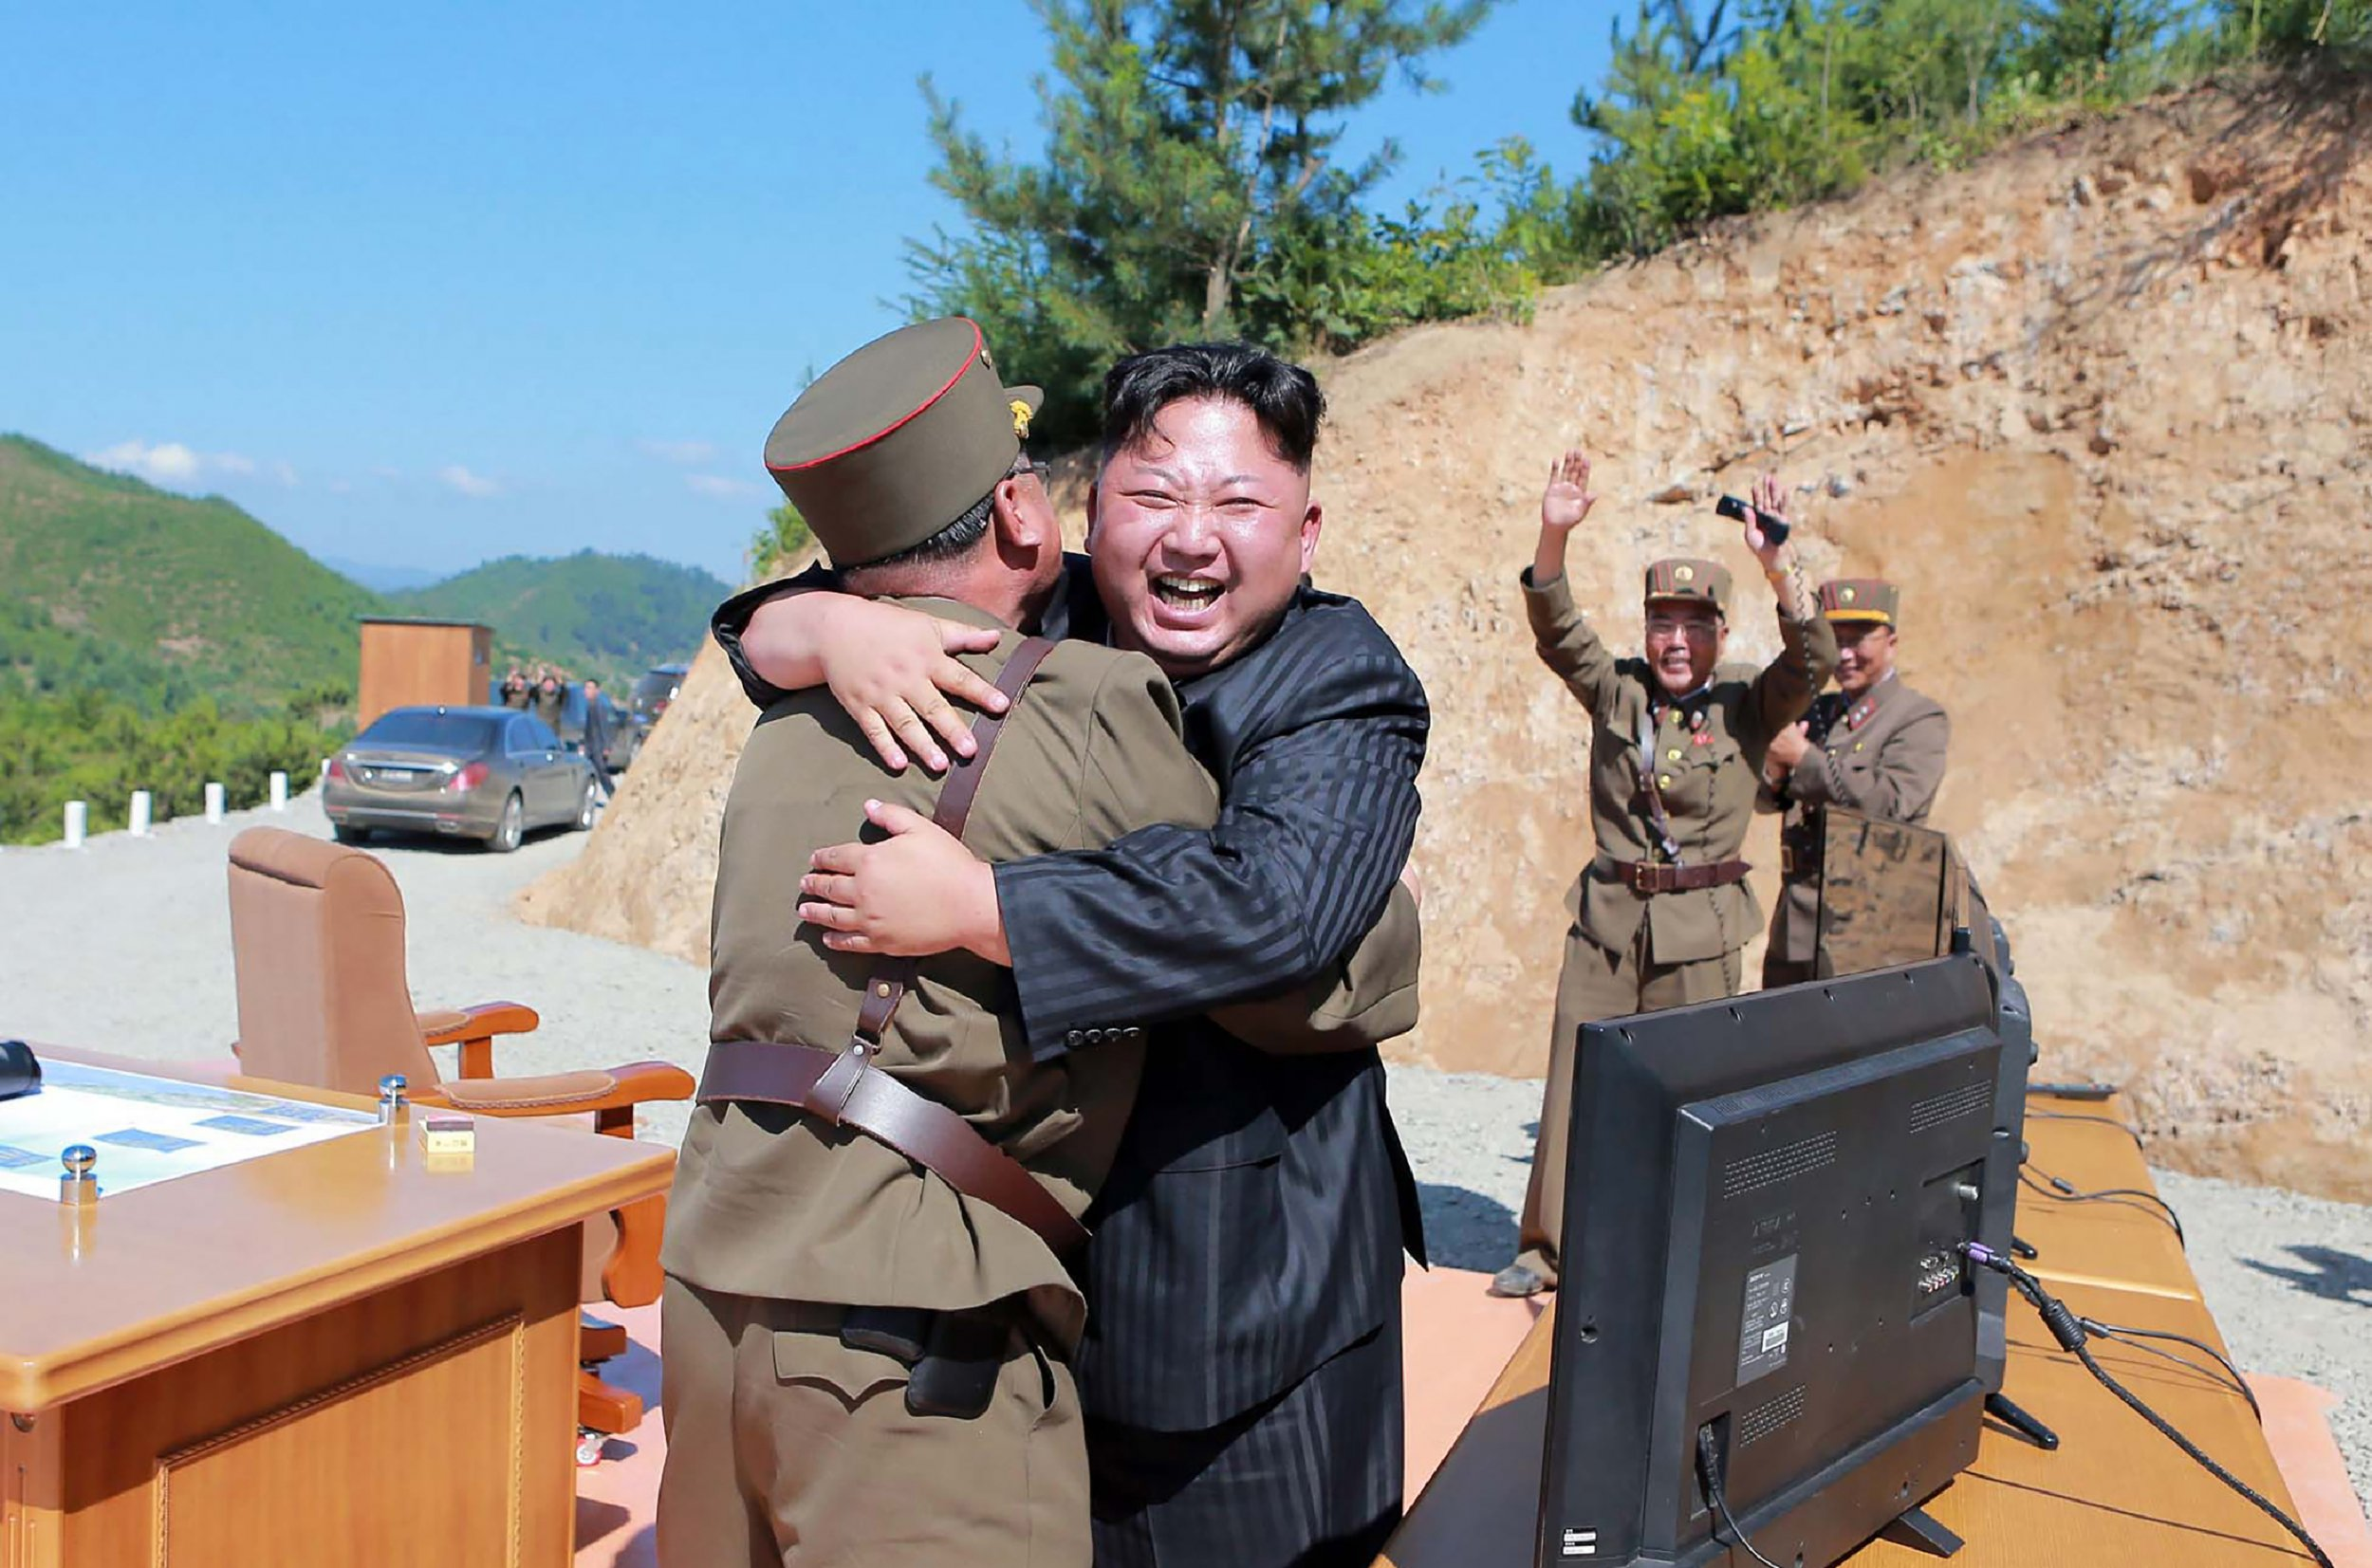 To nuke North Korea, the U.S. would have to rely on 1970s computers and floppy disks